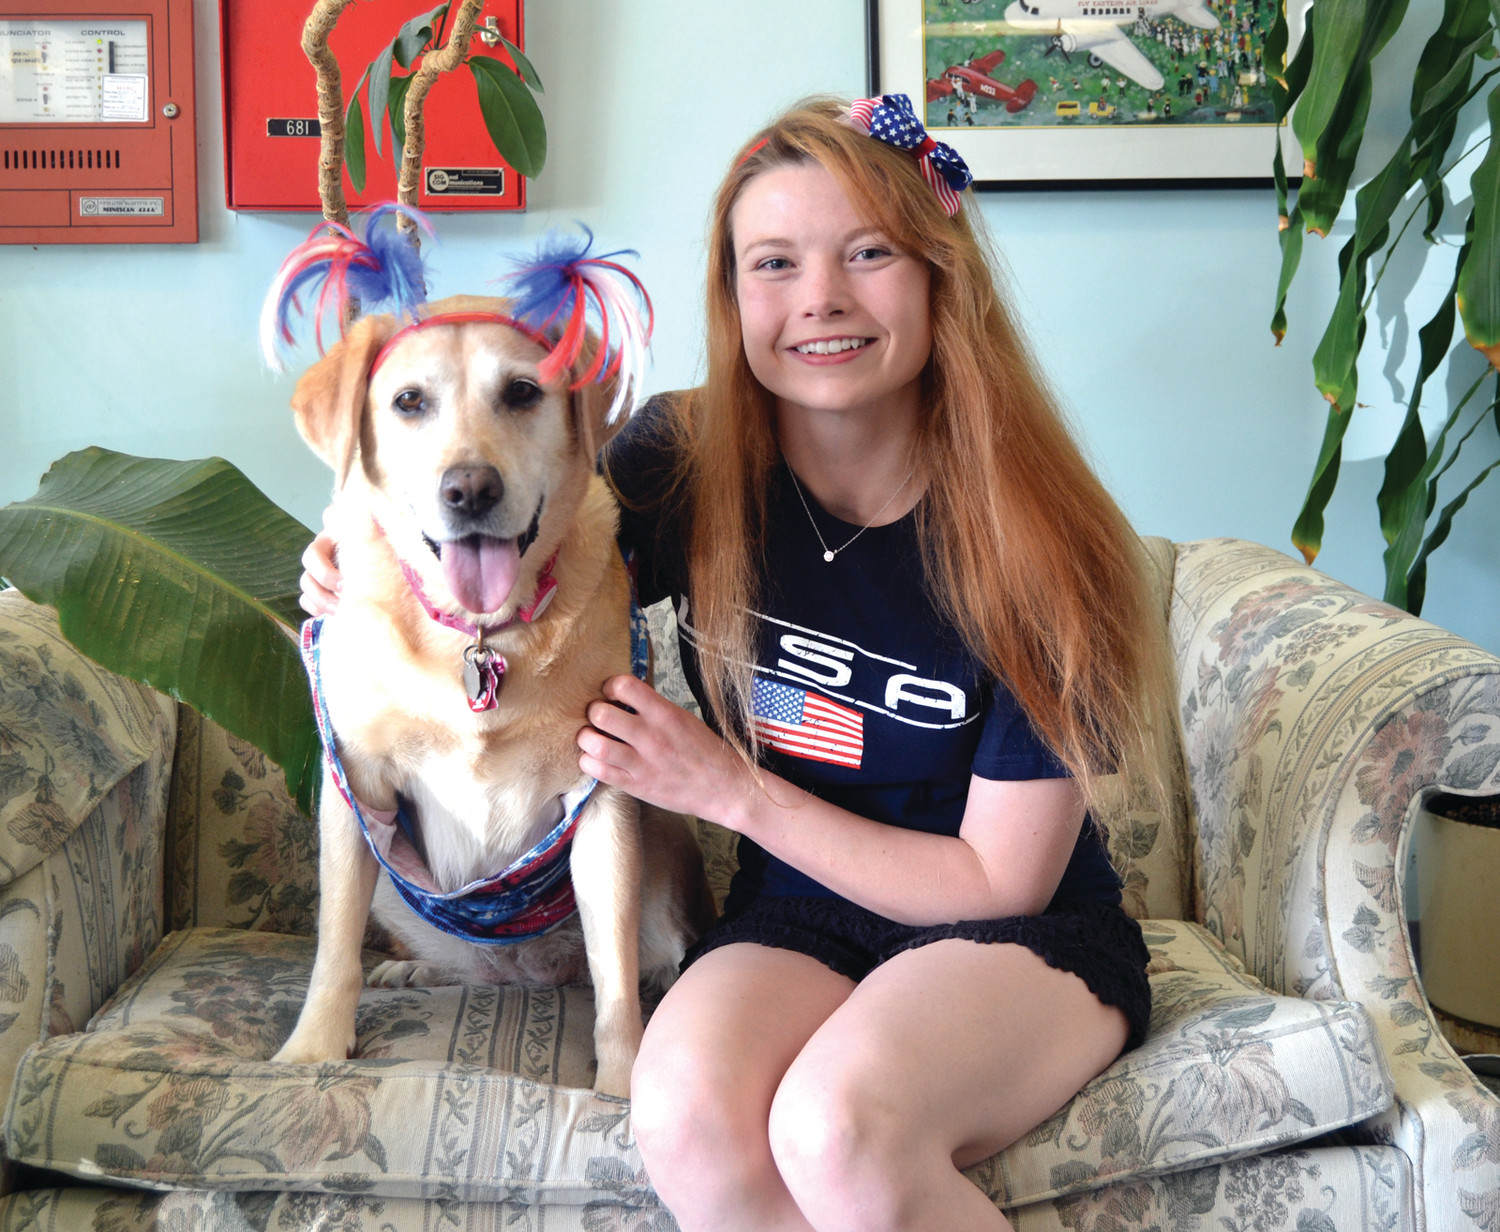 DYNAMIC DUO: Sahara the dog and her owner, Jacqie Lyman, share a special bond; they both even got dressed up for the Fourth of July festivities together.